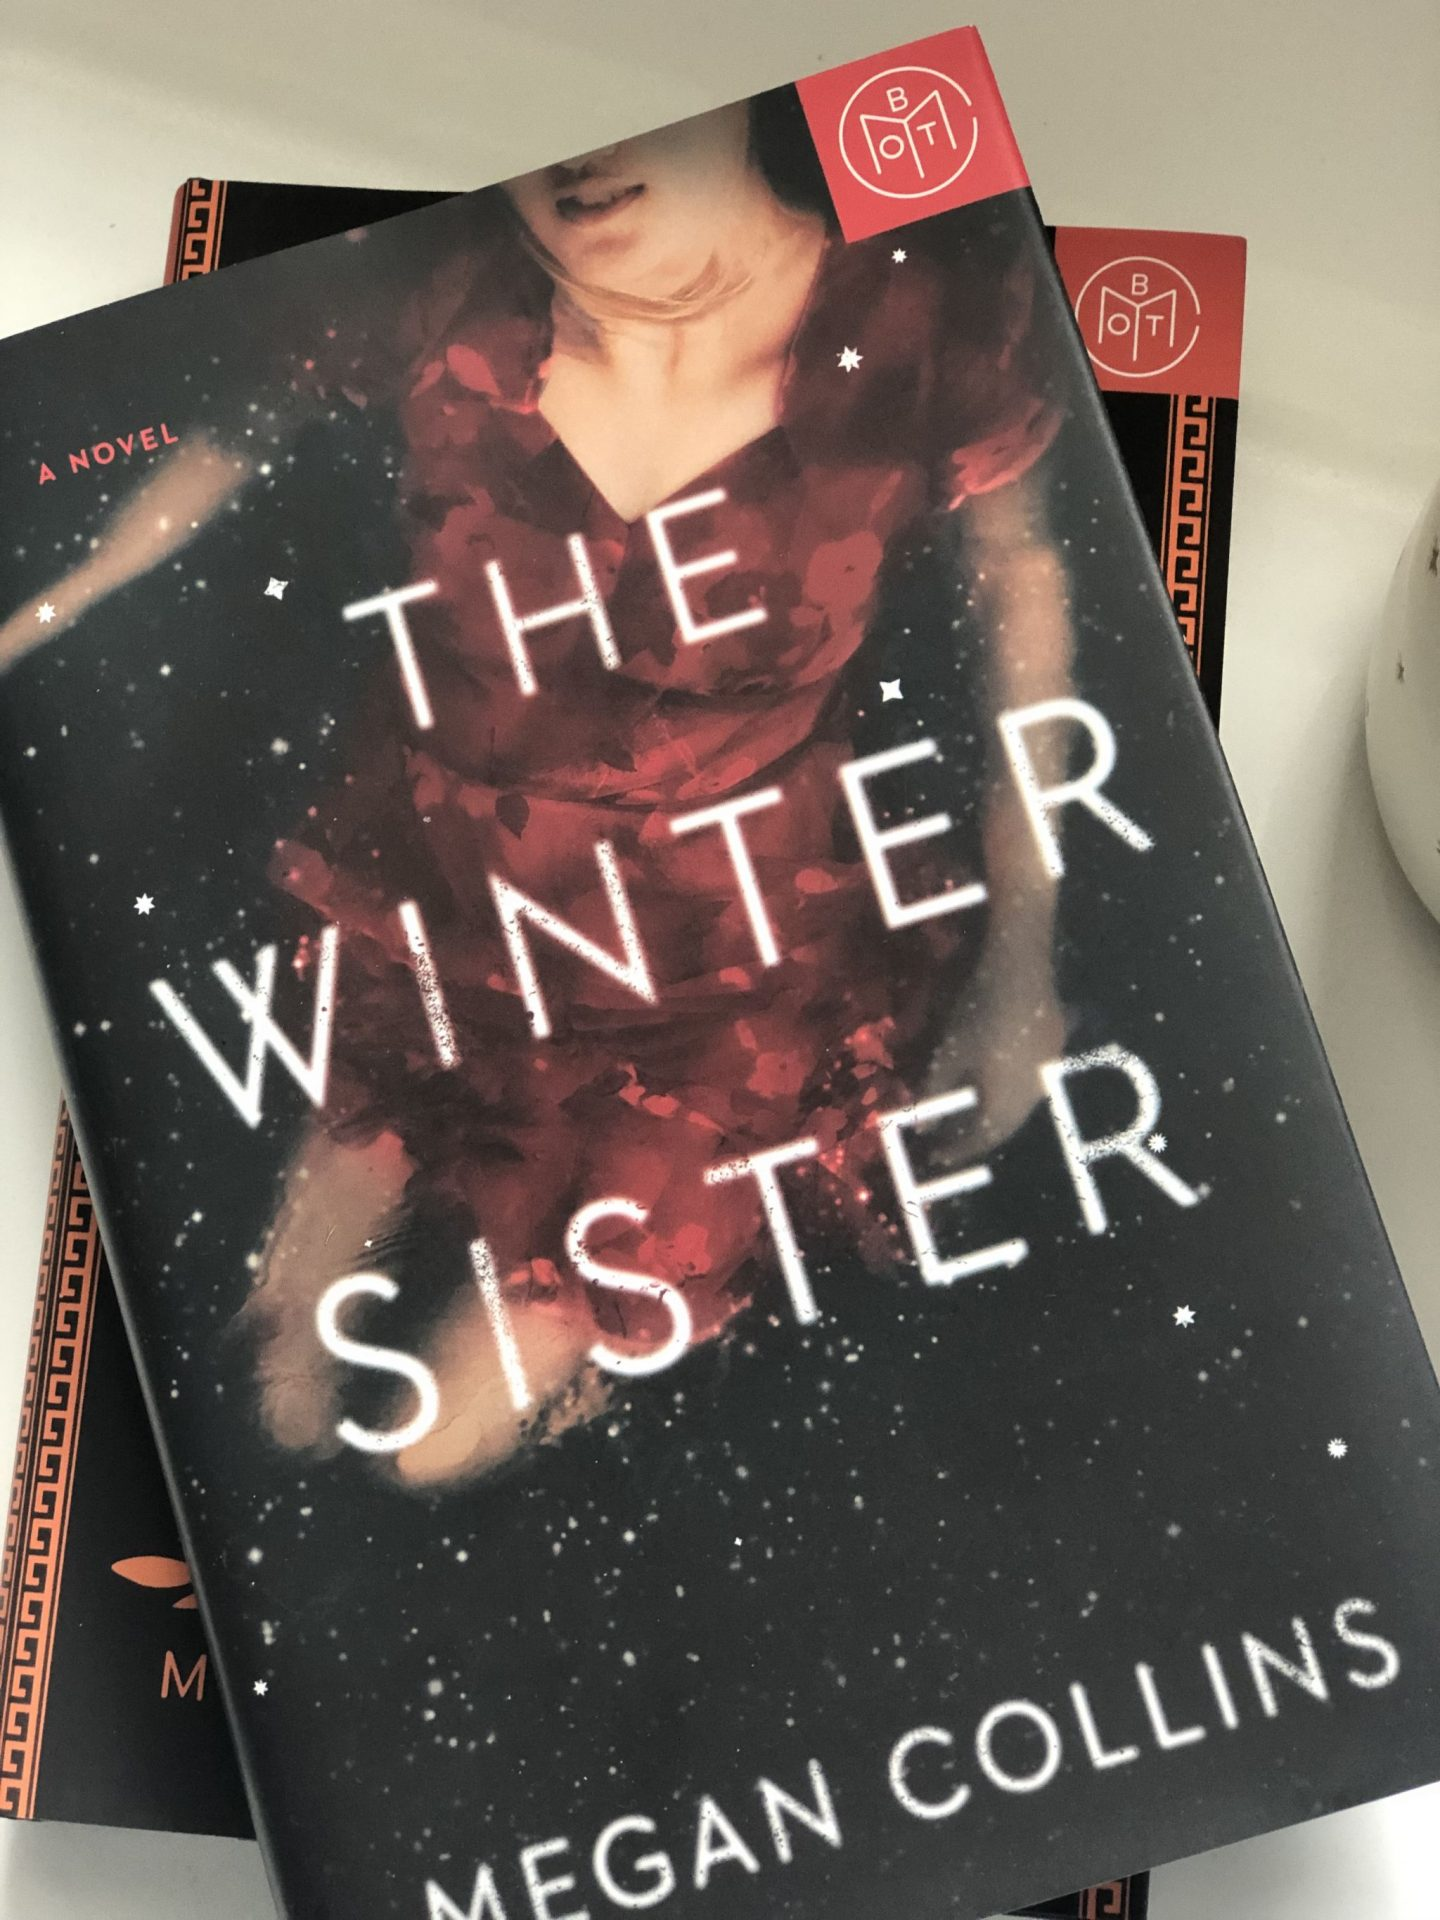 North Carolina blogger Rebecca Lately shares her picks for Book of the Month February 2019. Check it out to see what she got in her box this month!